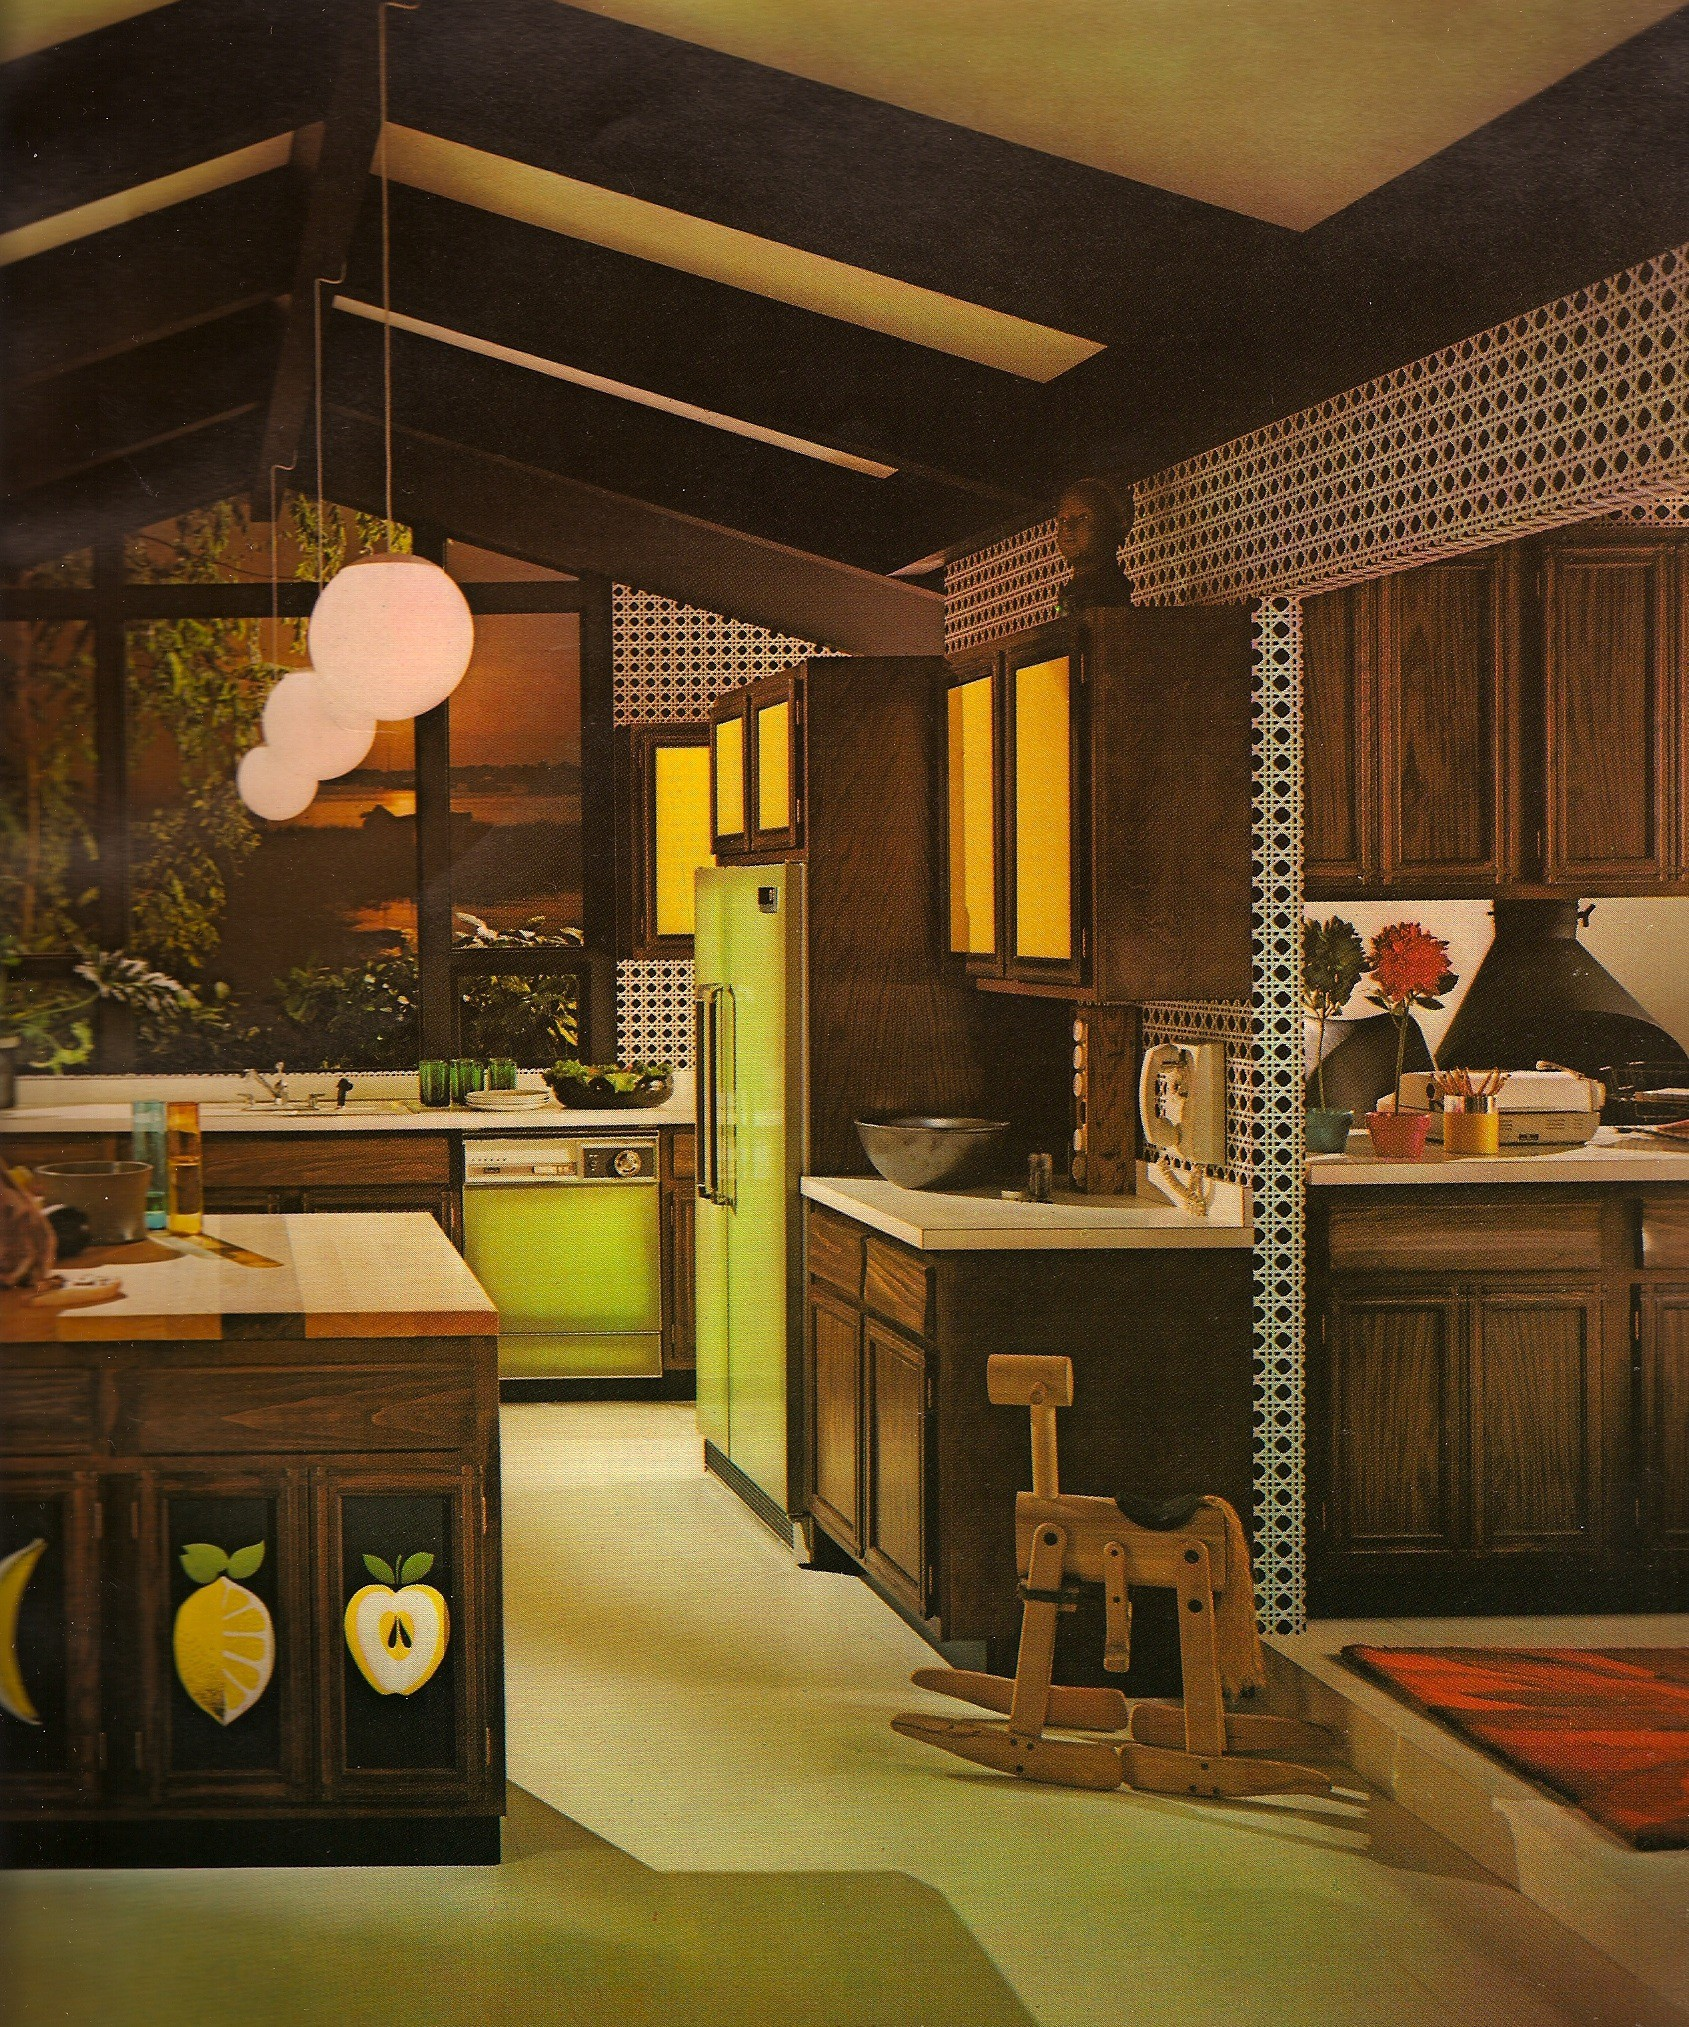 Photos before avocado toast the young people of the for 70s style kitchen cabinets